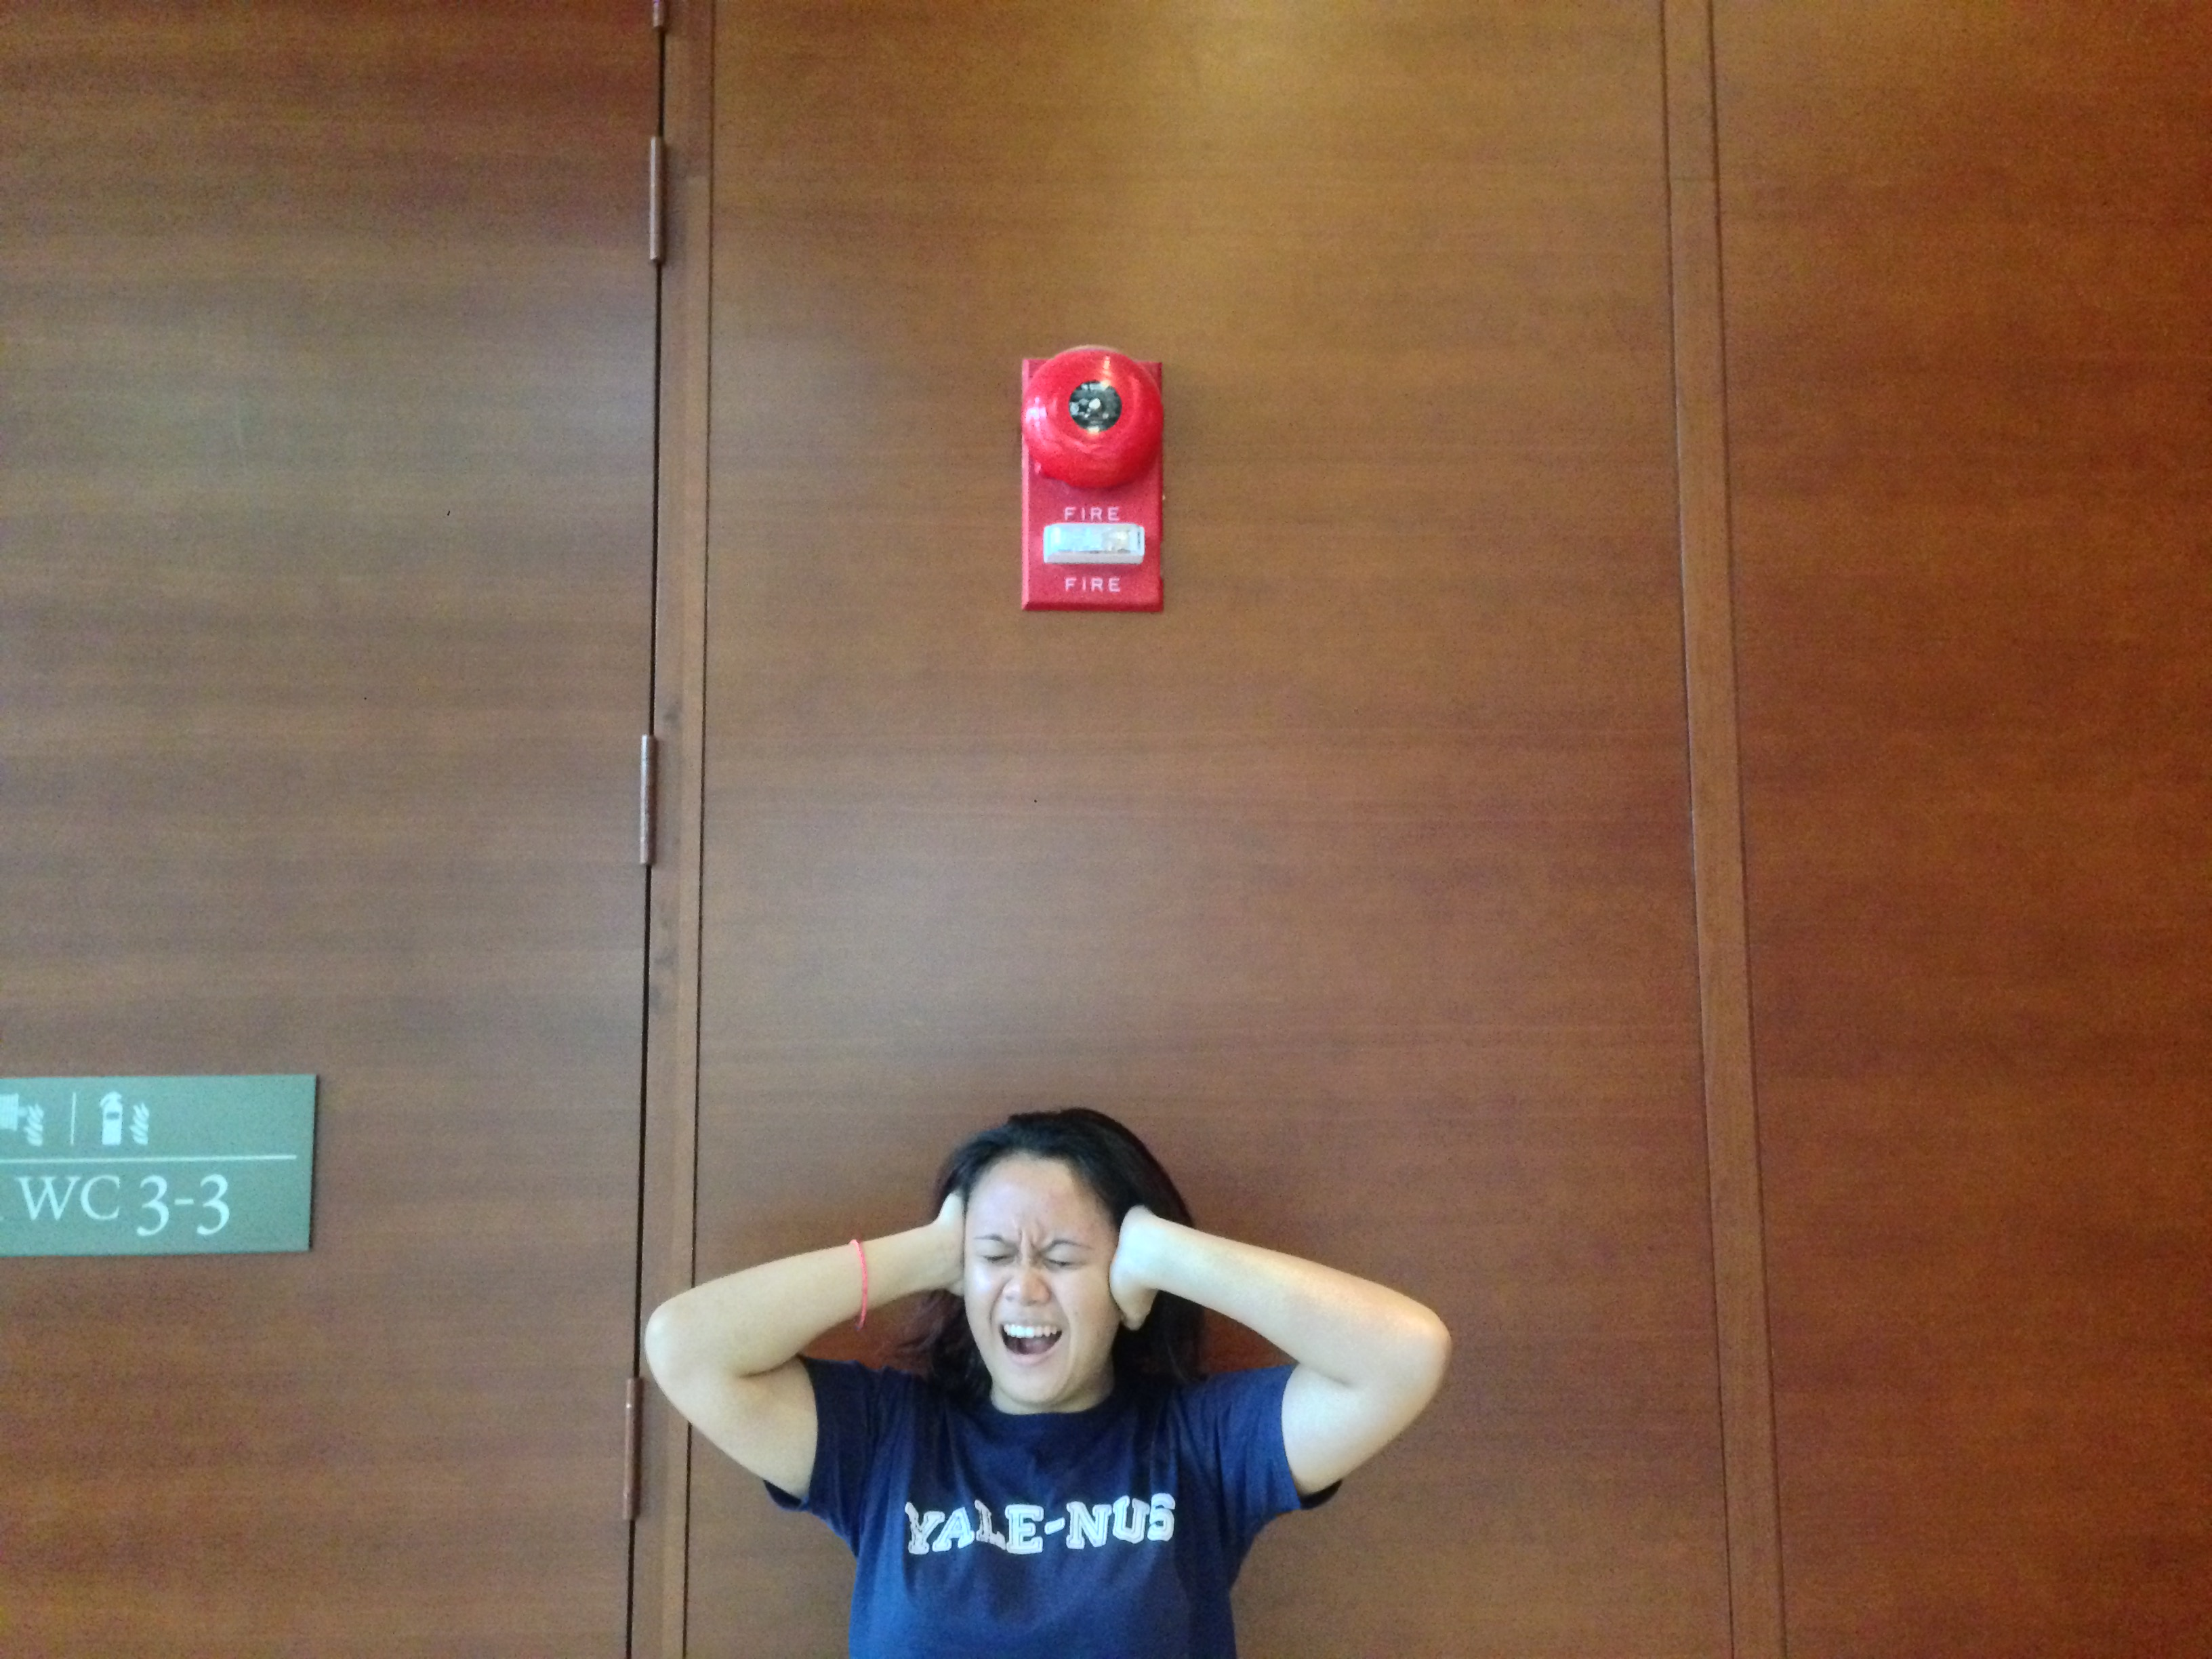 Fire in the House: Rectifying our Fire Safety Policies